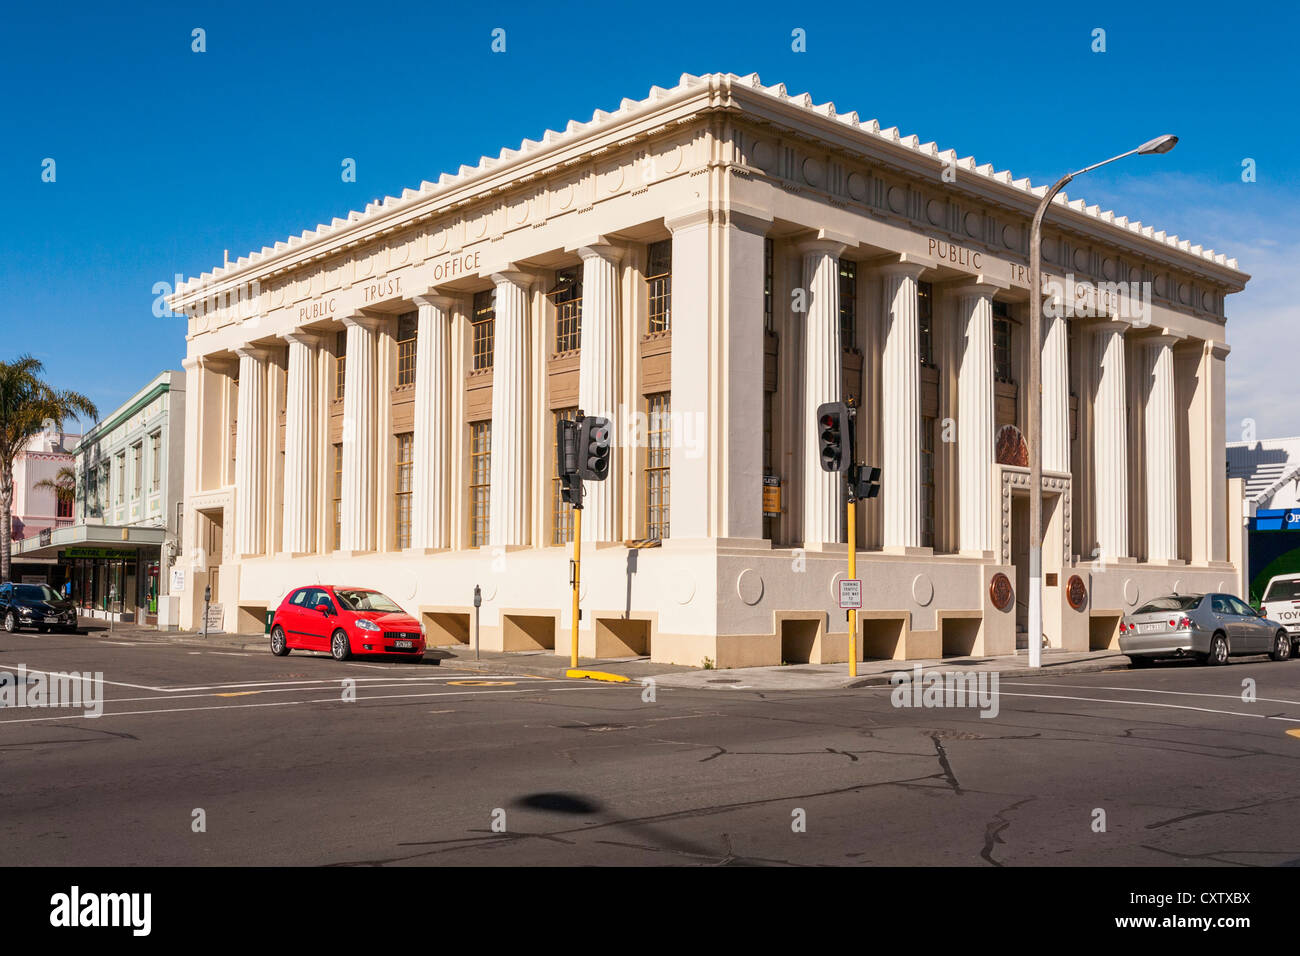 The Public Trust Office was one of the few buildings left standing in the centre of Napier, New Zealand, Stock Photo